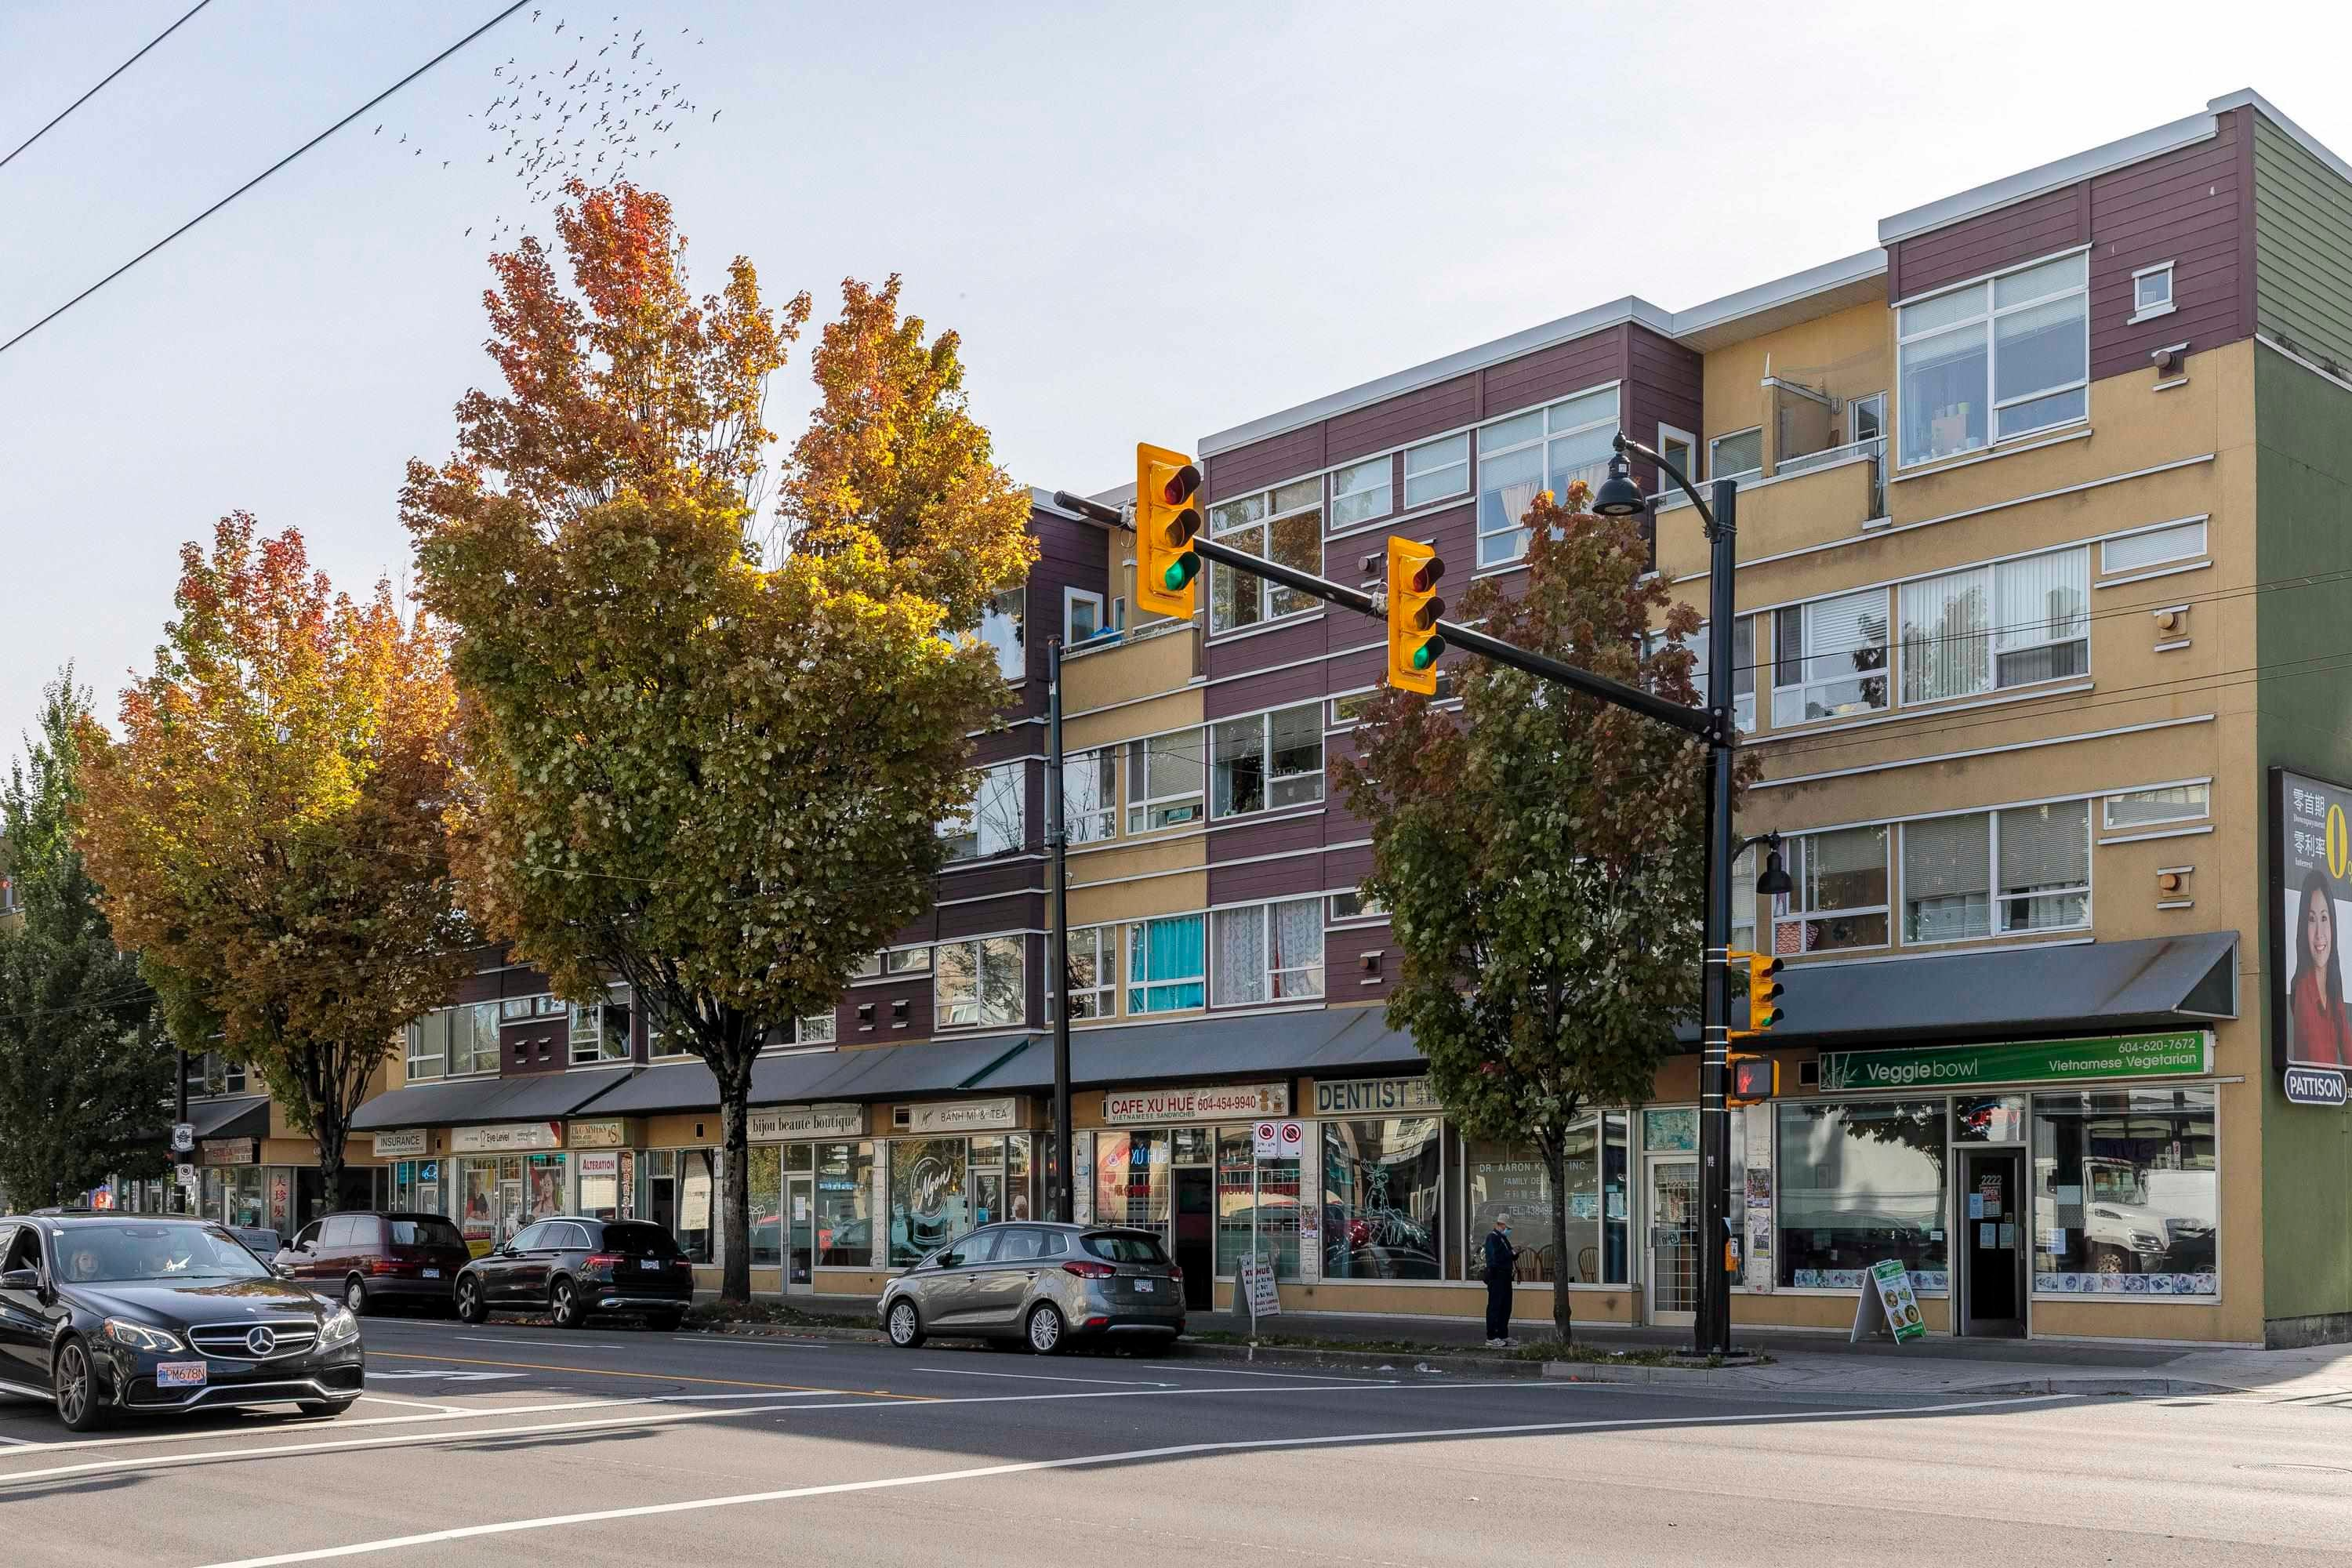 305 2238 KINGSWAY STREET - Victoria VE Apartment/Condo for sale, 2 Bedrooms (R2619429)